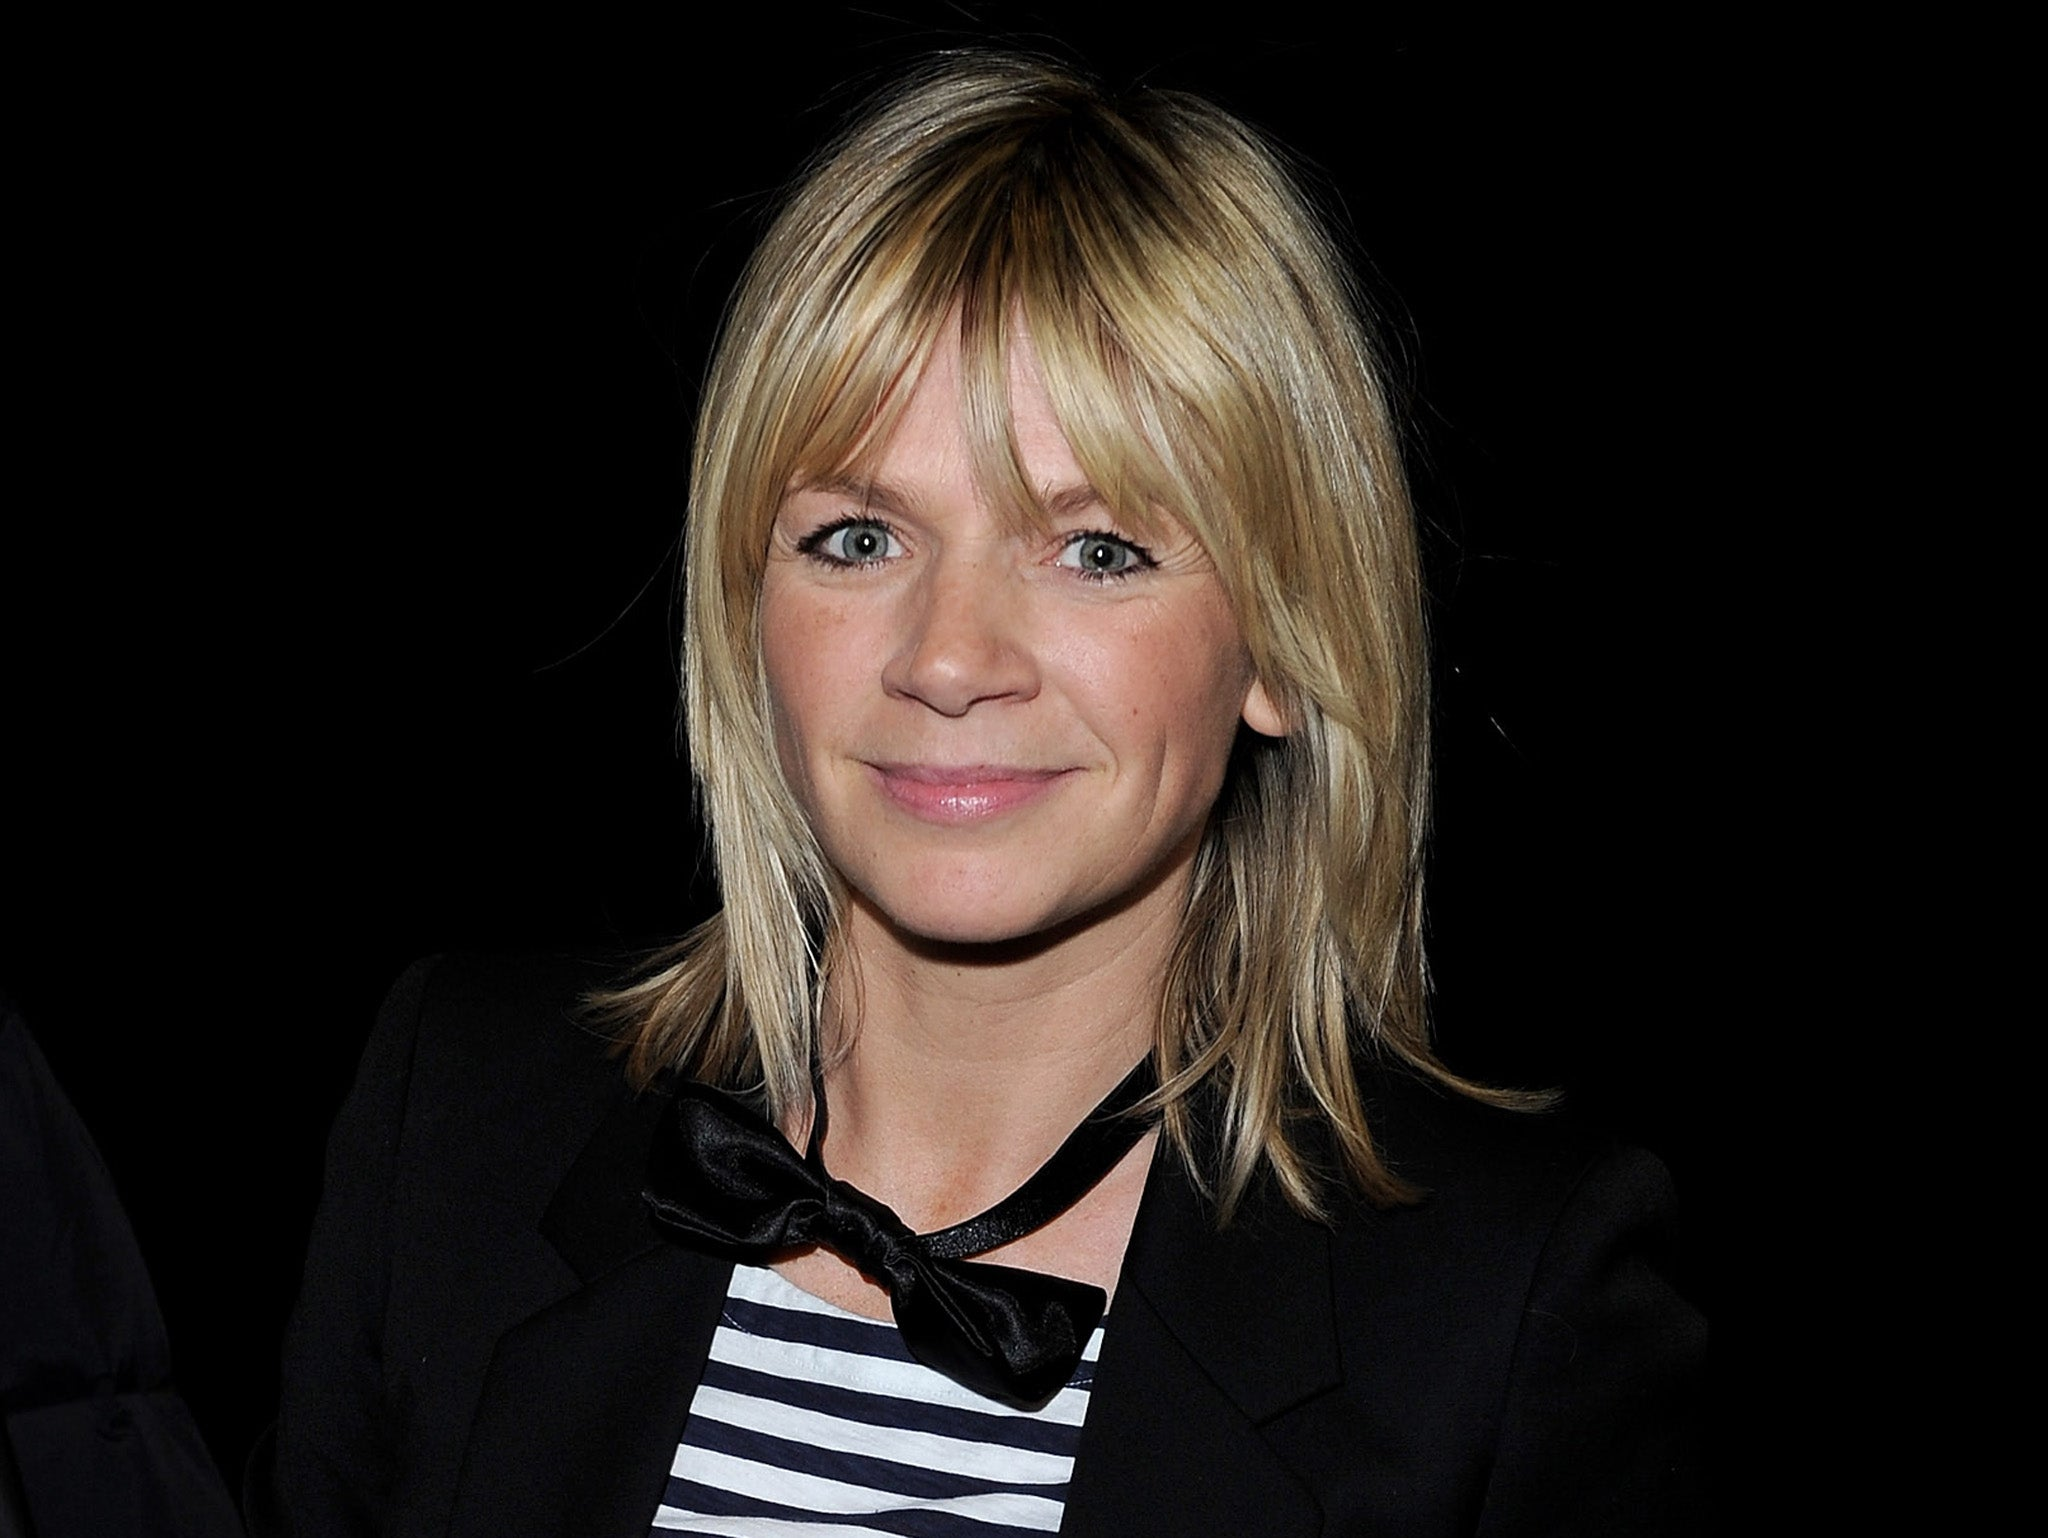 top gear zoe ball first in line to join chris evans as co presenter the independent